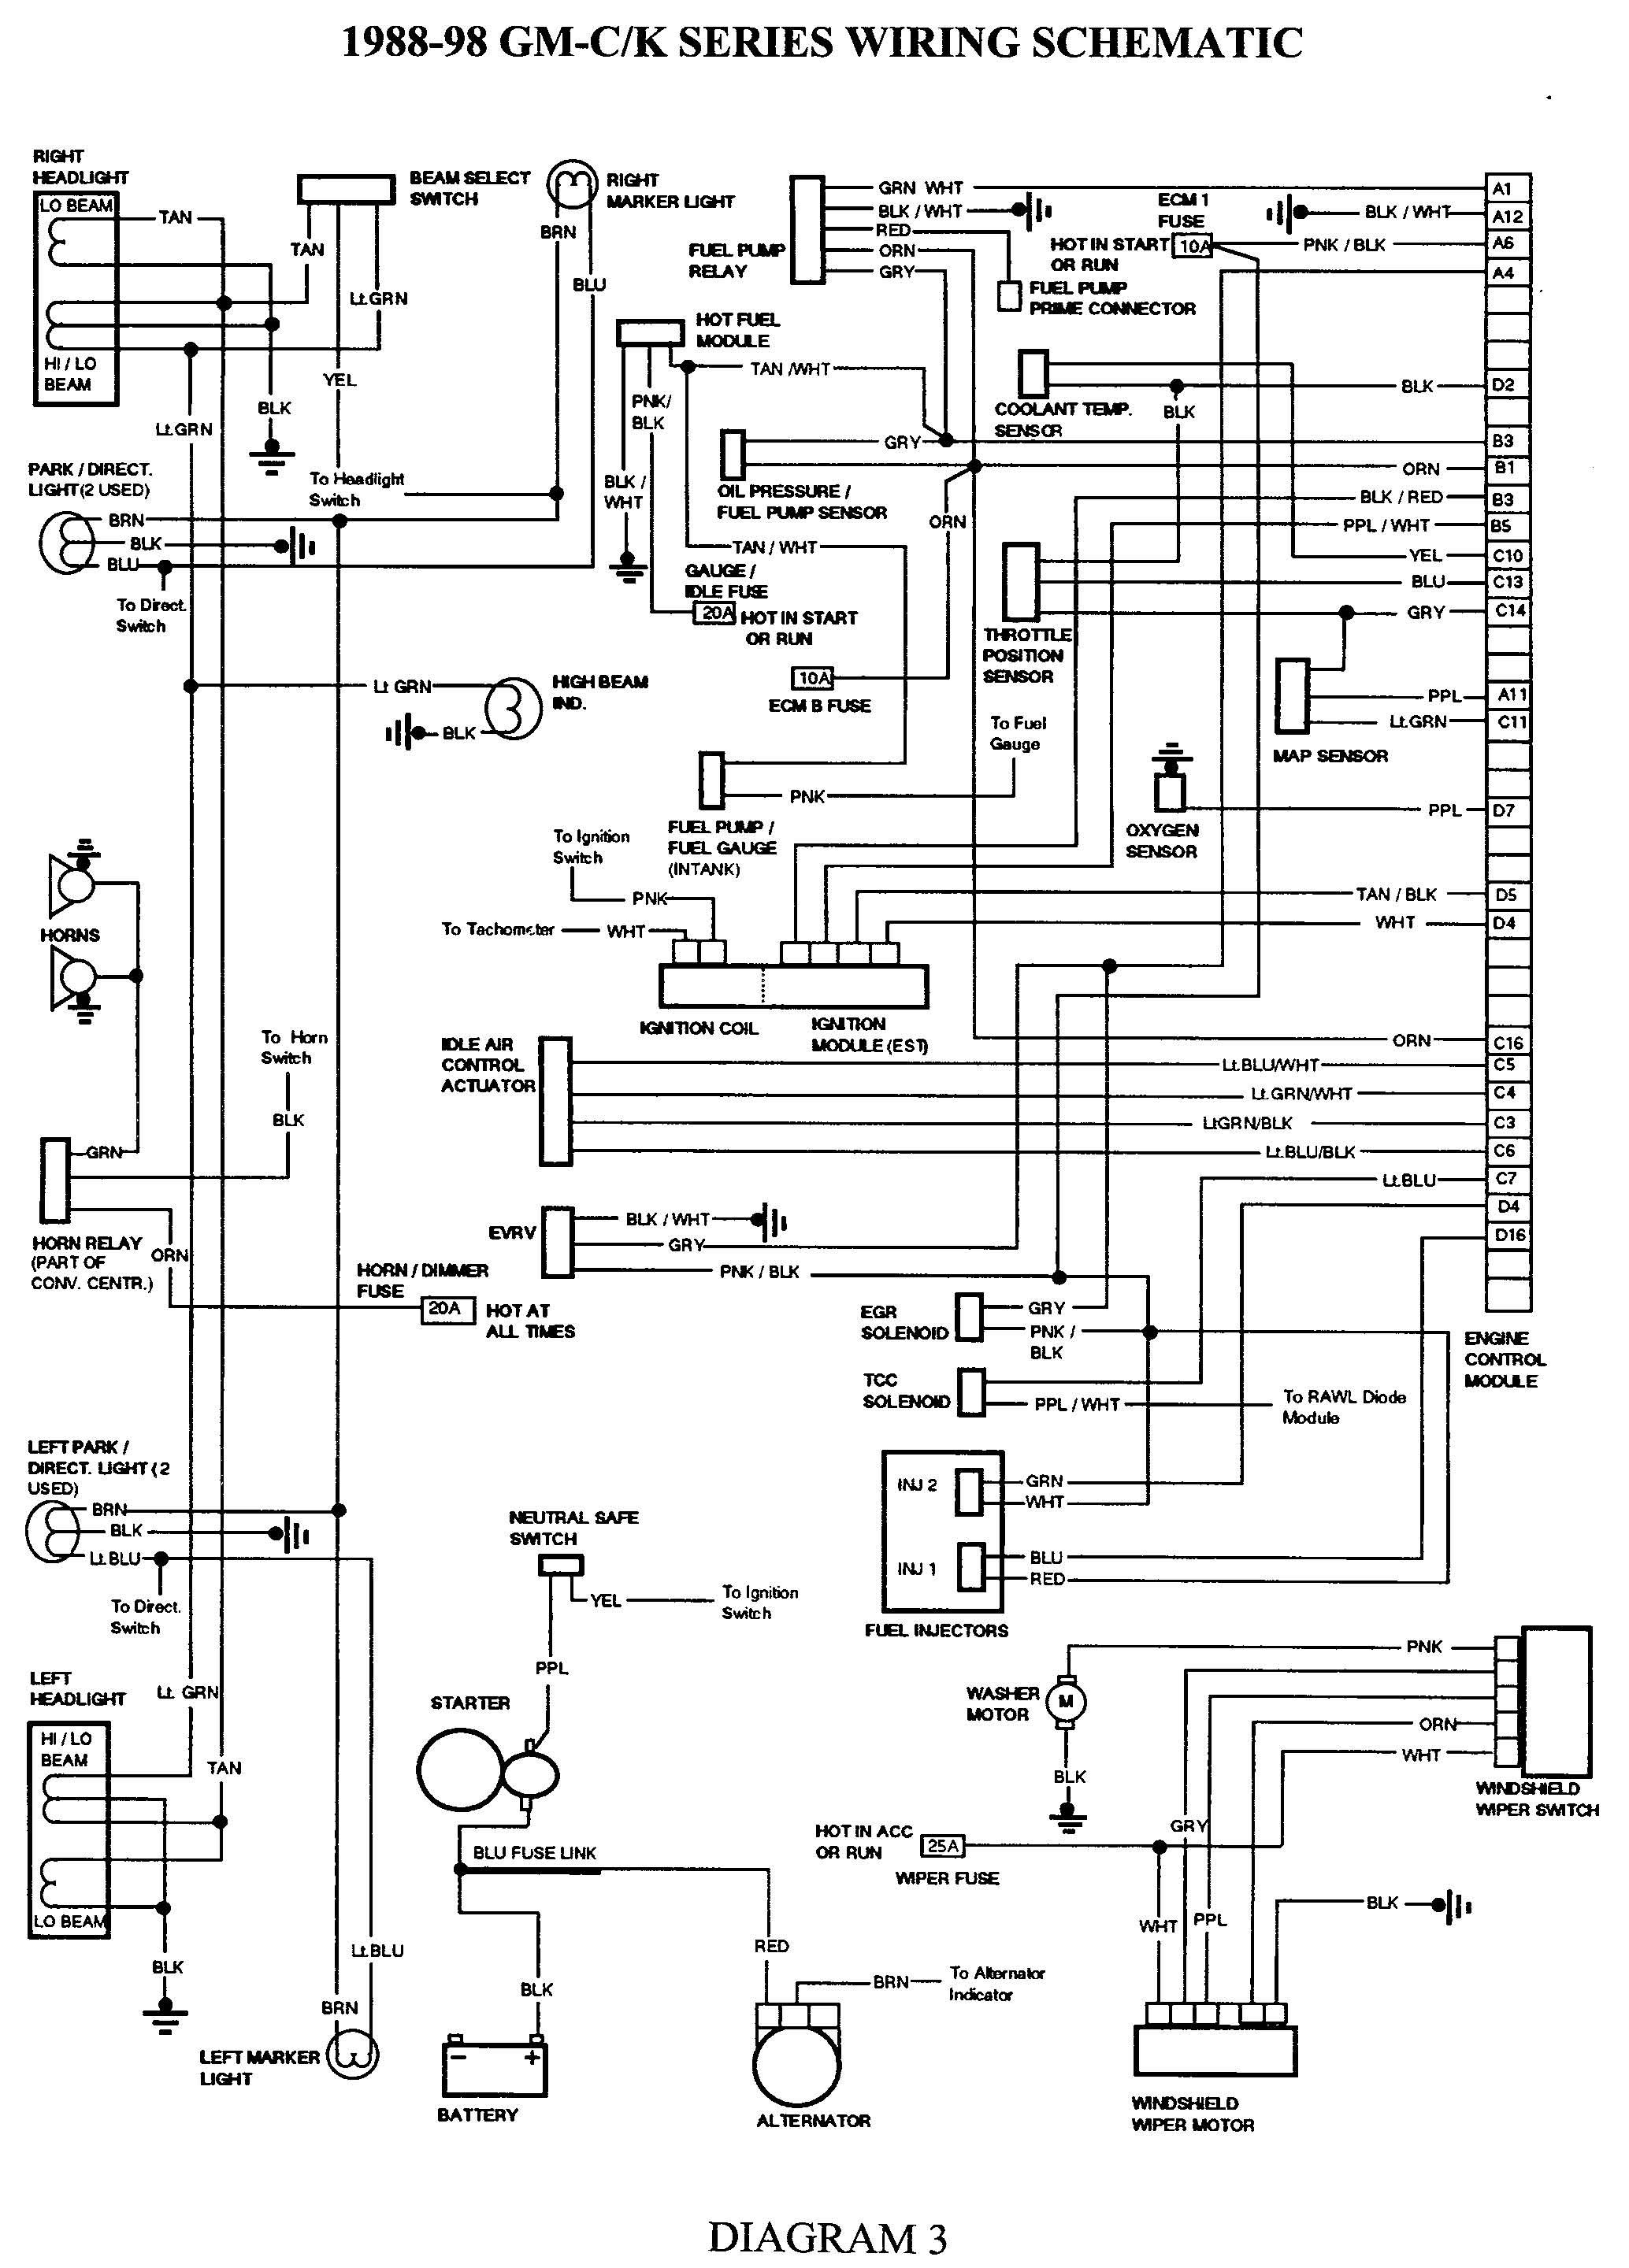 gmc c6500 wiring diagram wiring harness wiring diagram wiring wire rh savvigroup co 2006 gmc c6500 wiring diagram 1997 gmc c6500 wiring diagram